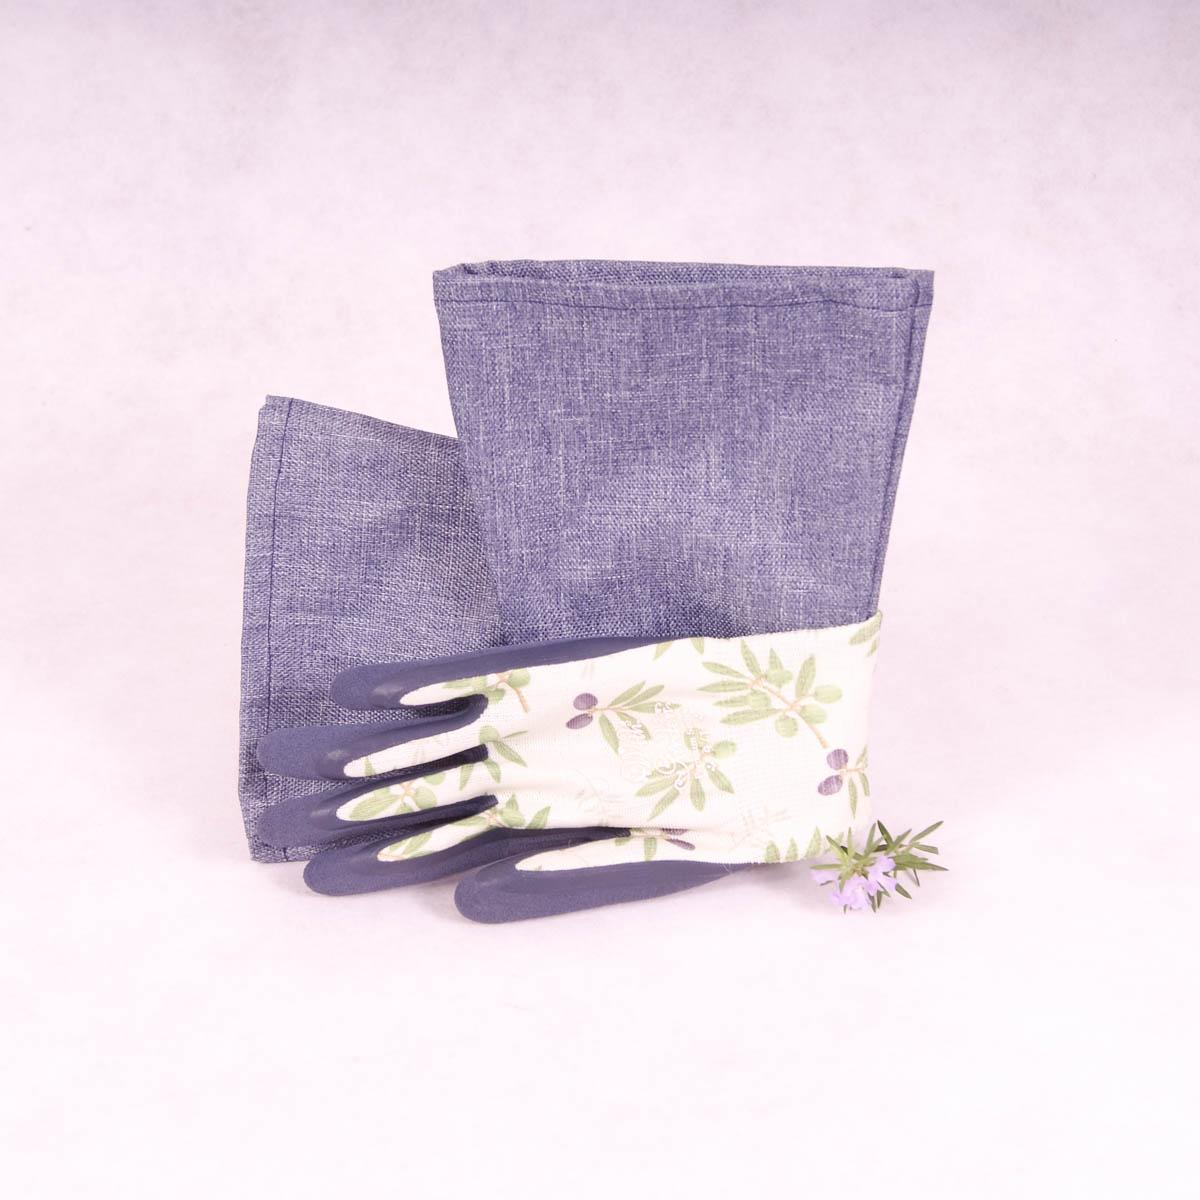 Long sleeve gardening gloves (Large) Premium Series - Olive Green with Blue Cuff